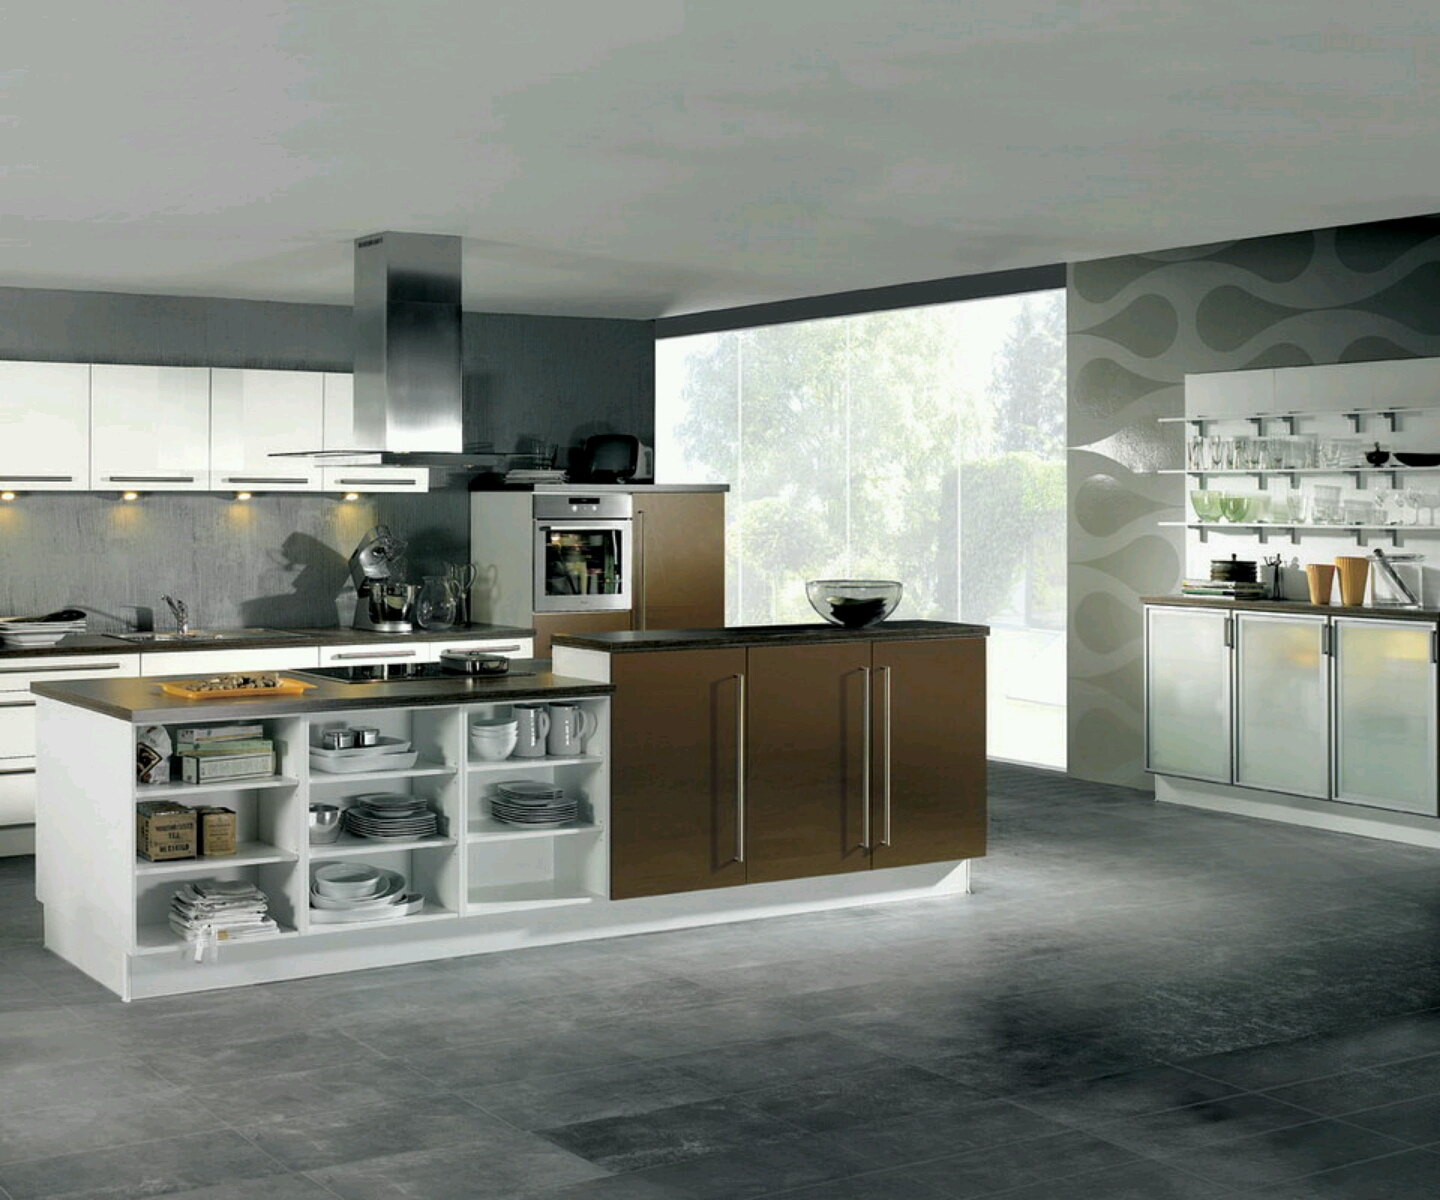 Ultra modern kitchen designs ideas modern home designs for Home kitchen design images